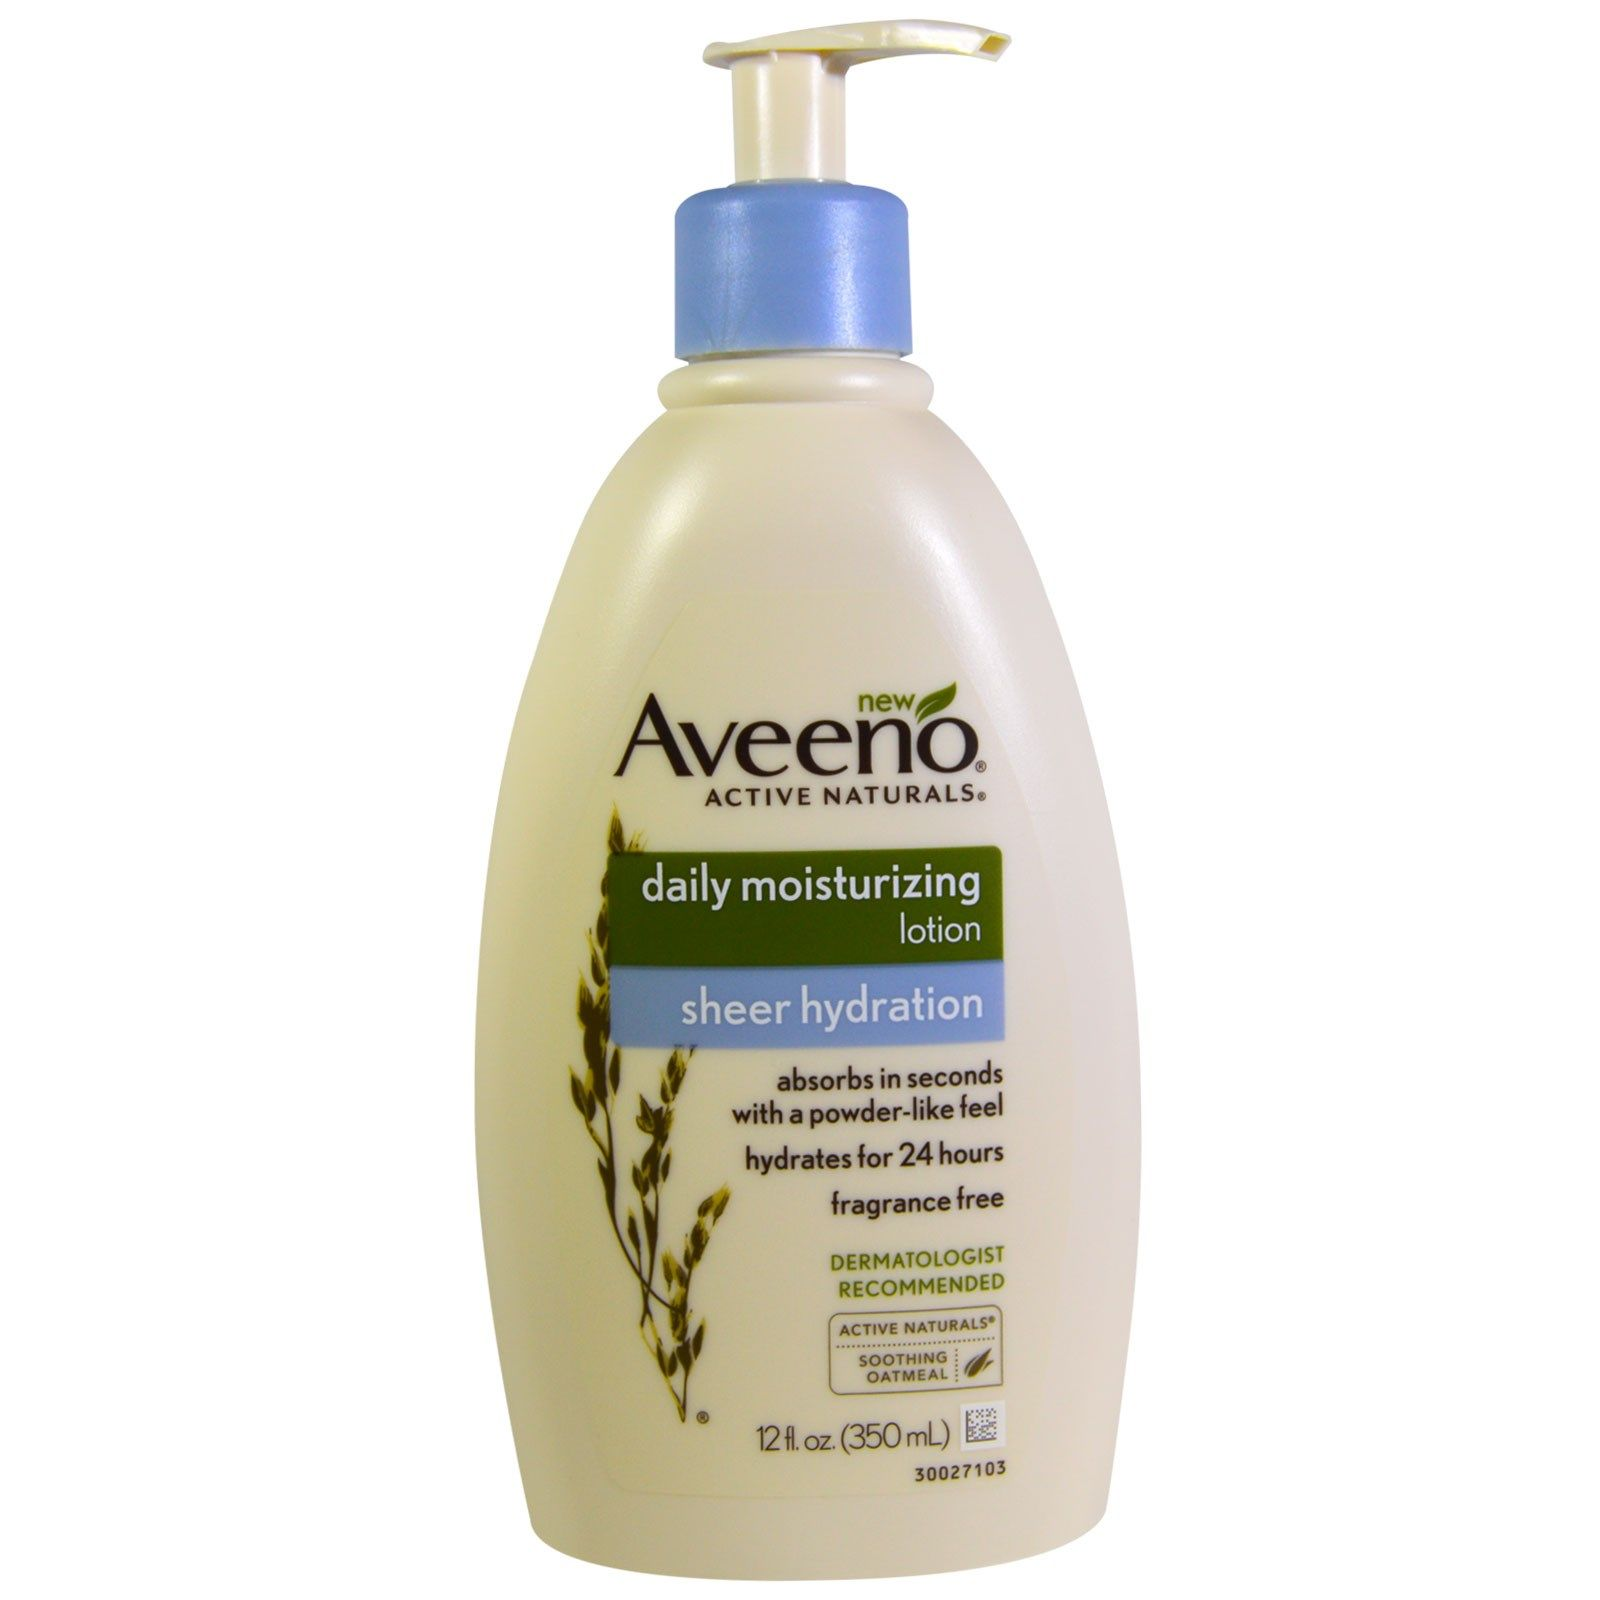 Q Is Aveeno Cruelty Free A Aveeno Is Not Cruelty Free In 2019 Aveeno Products And Ingredients Are Tested On Animals When Required By Law Aveeno S Product I 2020